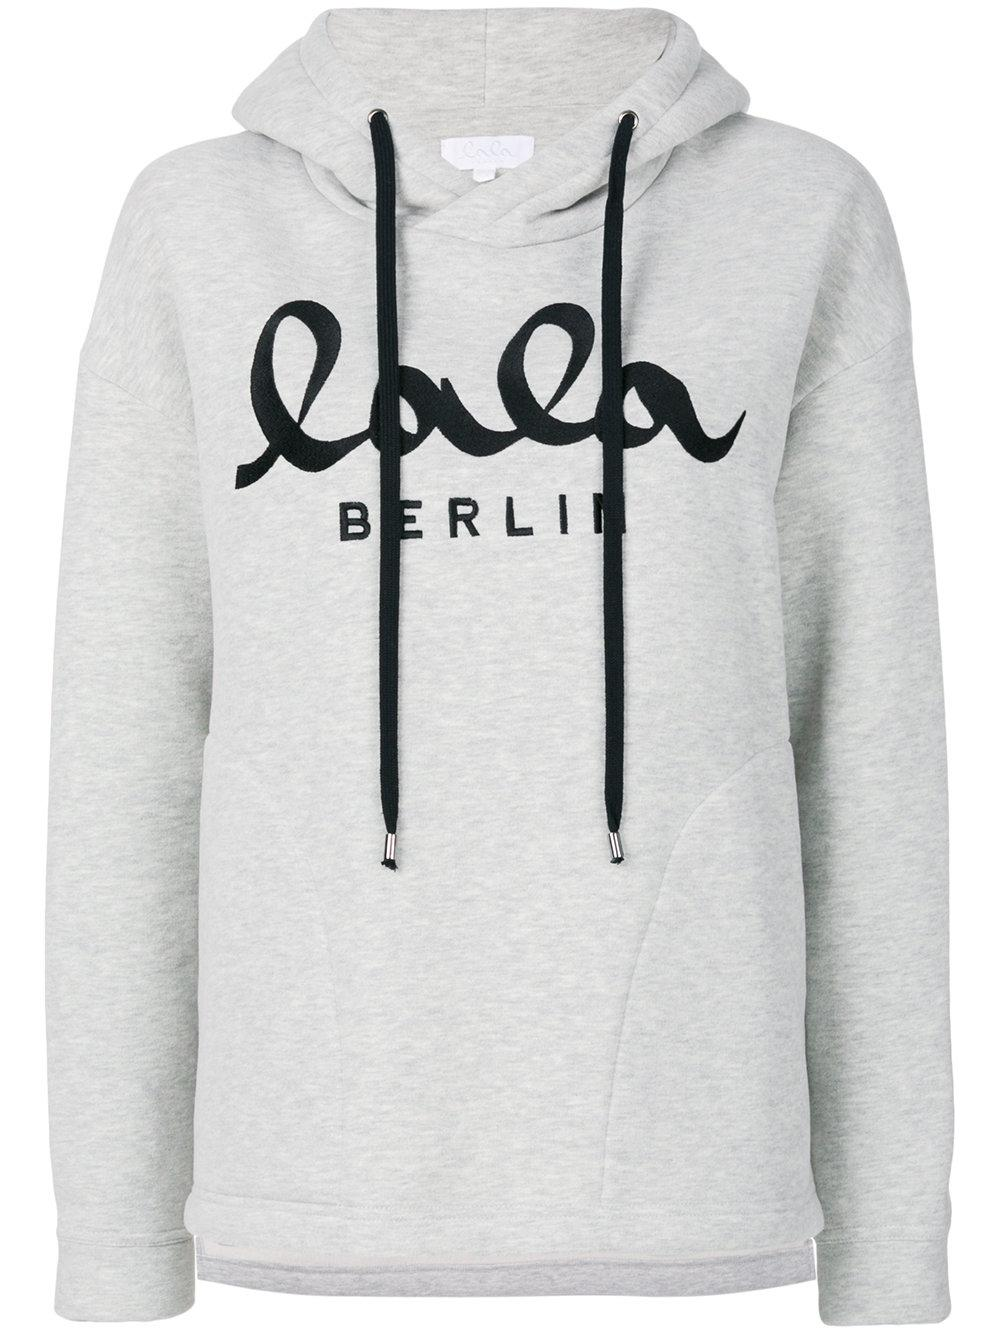 lala berlin hooded sweatshirt in gray for men lyst. Black Bedroom Furniture Sets. Home Design Ideas